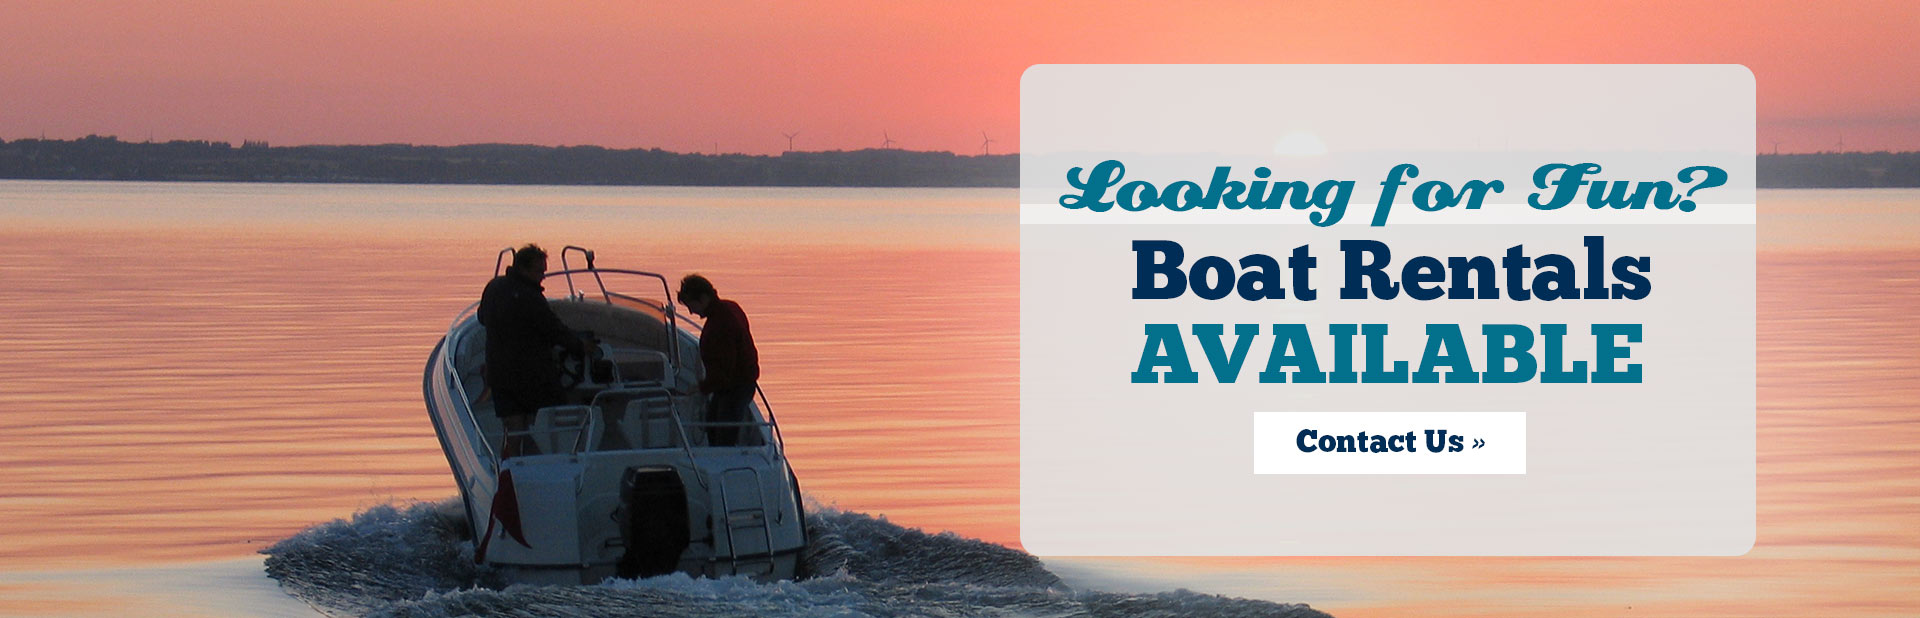 Boat rentals are available! Contact us for details.